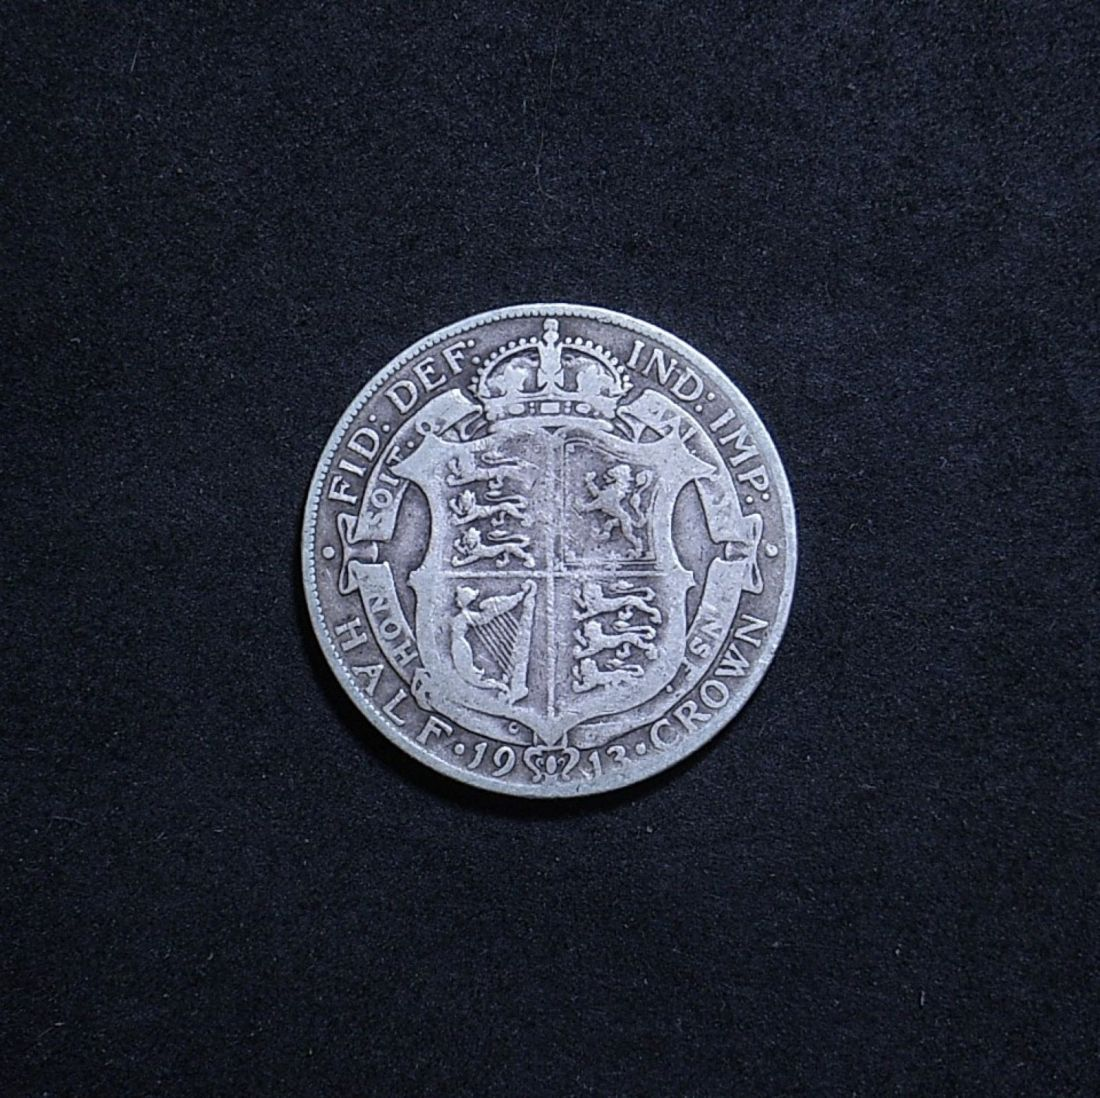 UK Half Crown 1913 reverse showing overall appearance